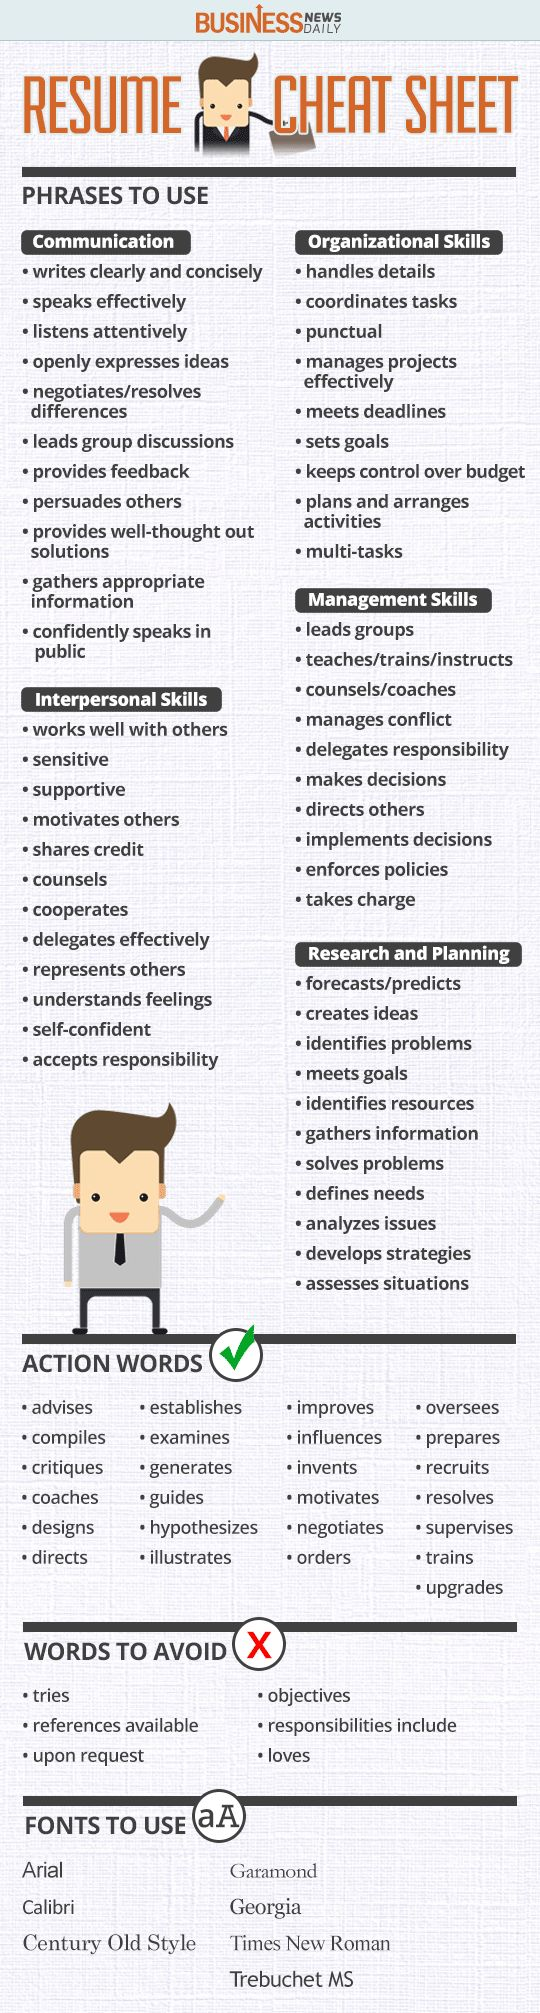 Opposenewapstandardsus  Splendid  Ideas About Resume On Pinterest  Cv Format Resume Cv And  With Handsome Resume Cheat Sheet Infographic Andrews Almost Done With A Complete Unit On Employment Which With Nice Engineer Resume Template Also Office Assistant Resume Examples In Addition How To Write A Resume For Internship And Resume For Personal Trainer As Well As Administrative Resume Objective Additionally Oif Resume From Pinterestcom With Opposenewapstandardsus  Handsome  Ideas About Resume On Pinterest  Cv Format Resume Cv And  With Nice Resume Cheat Sheet Infographic Andrews Almost Done With A Complete Unit On Employment Which And Splendid Engineer Resume Template Also Office Assistant Resume Examples In Addition How To Write A Resume For Internship From Pinterestcom